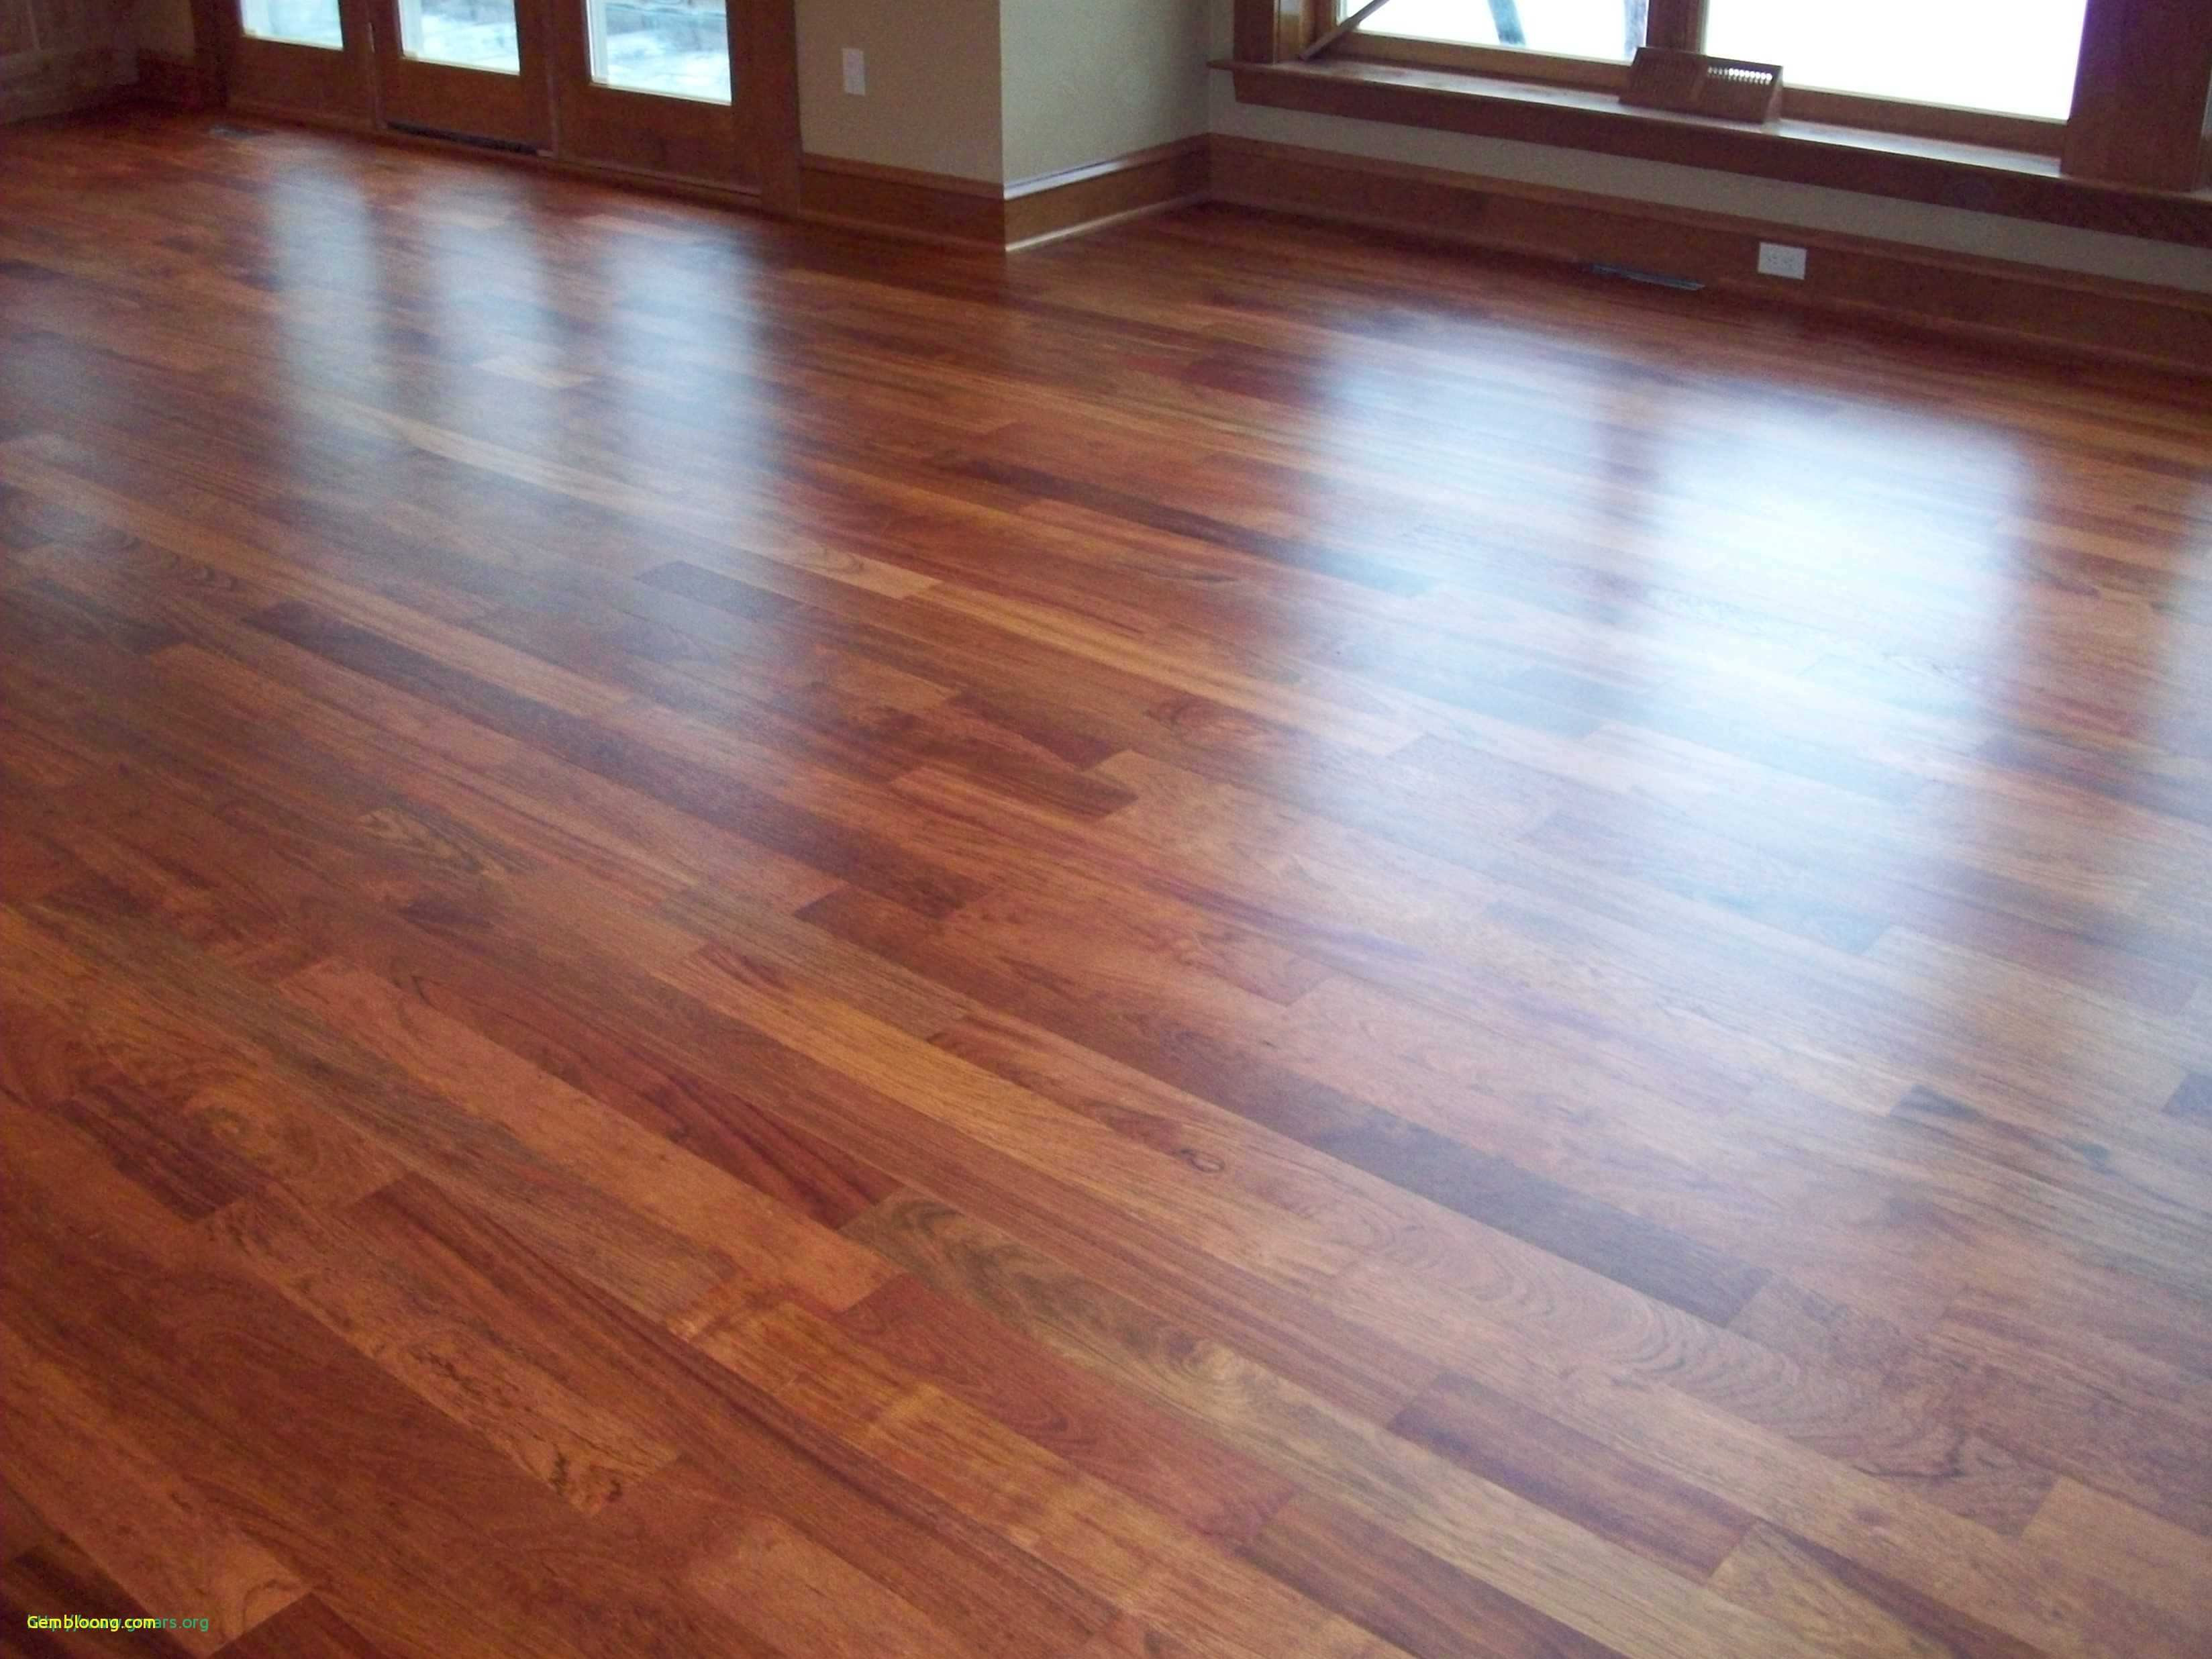 hardwood floor varnish of wood for floors facesinnature within best method for cleaning wood floors nouveau engaging discount hardwood flooring 5 where to buy inspirational